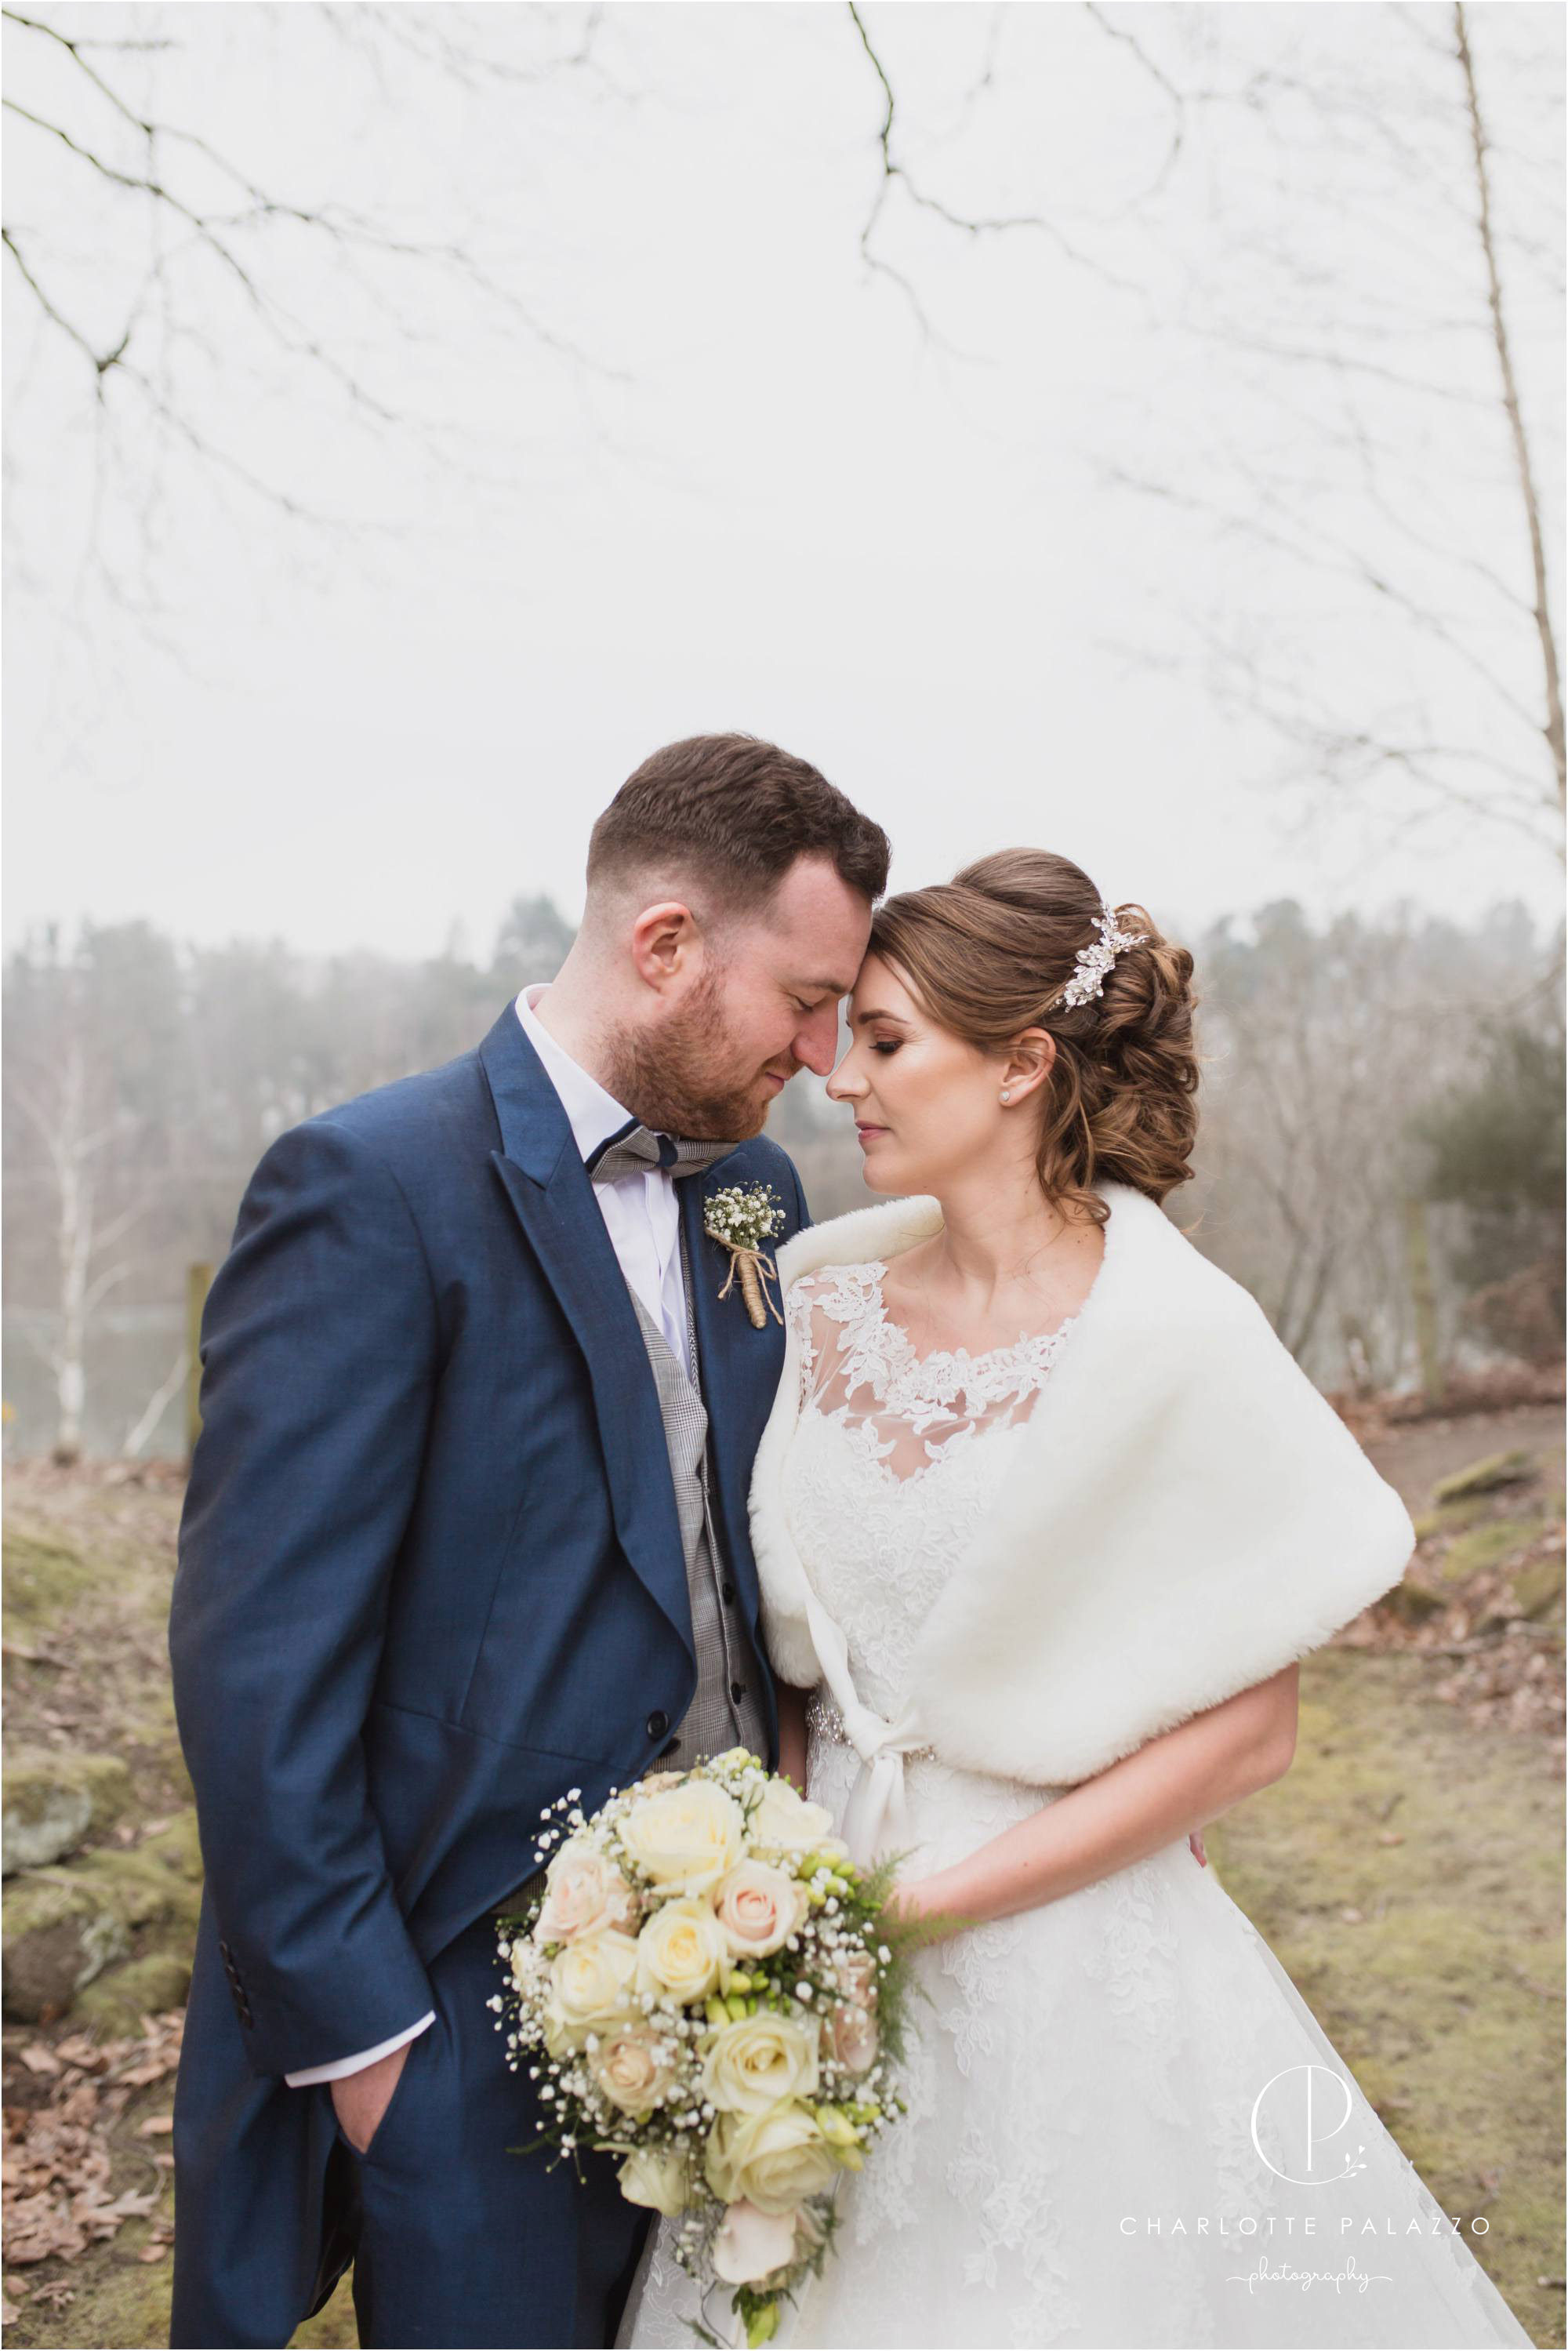 Kirst_Peter_Snowy_Nunsmere_Hall_Winter_Wedding_Cheshire_Photographer_0017.jpg